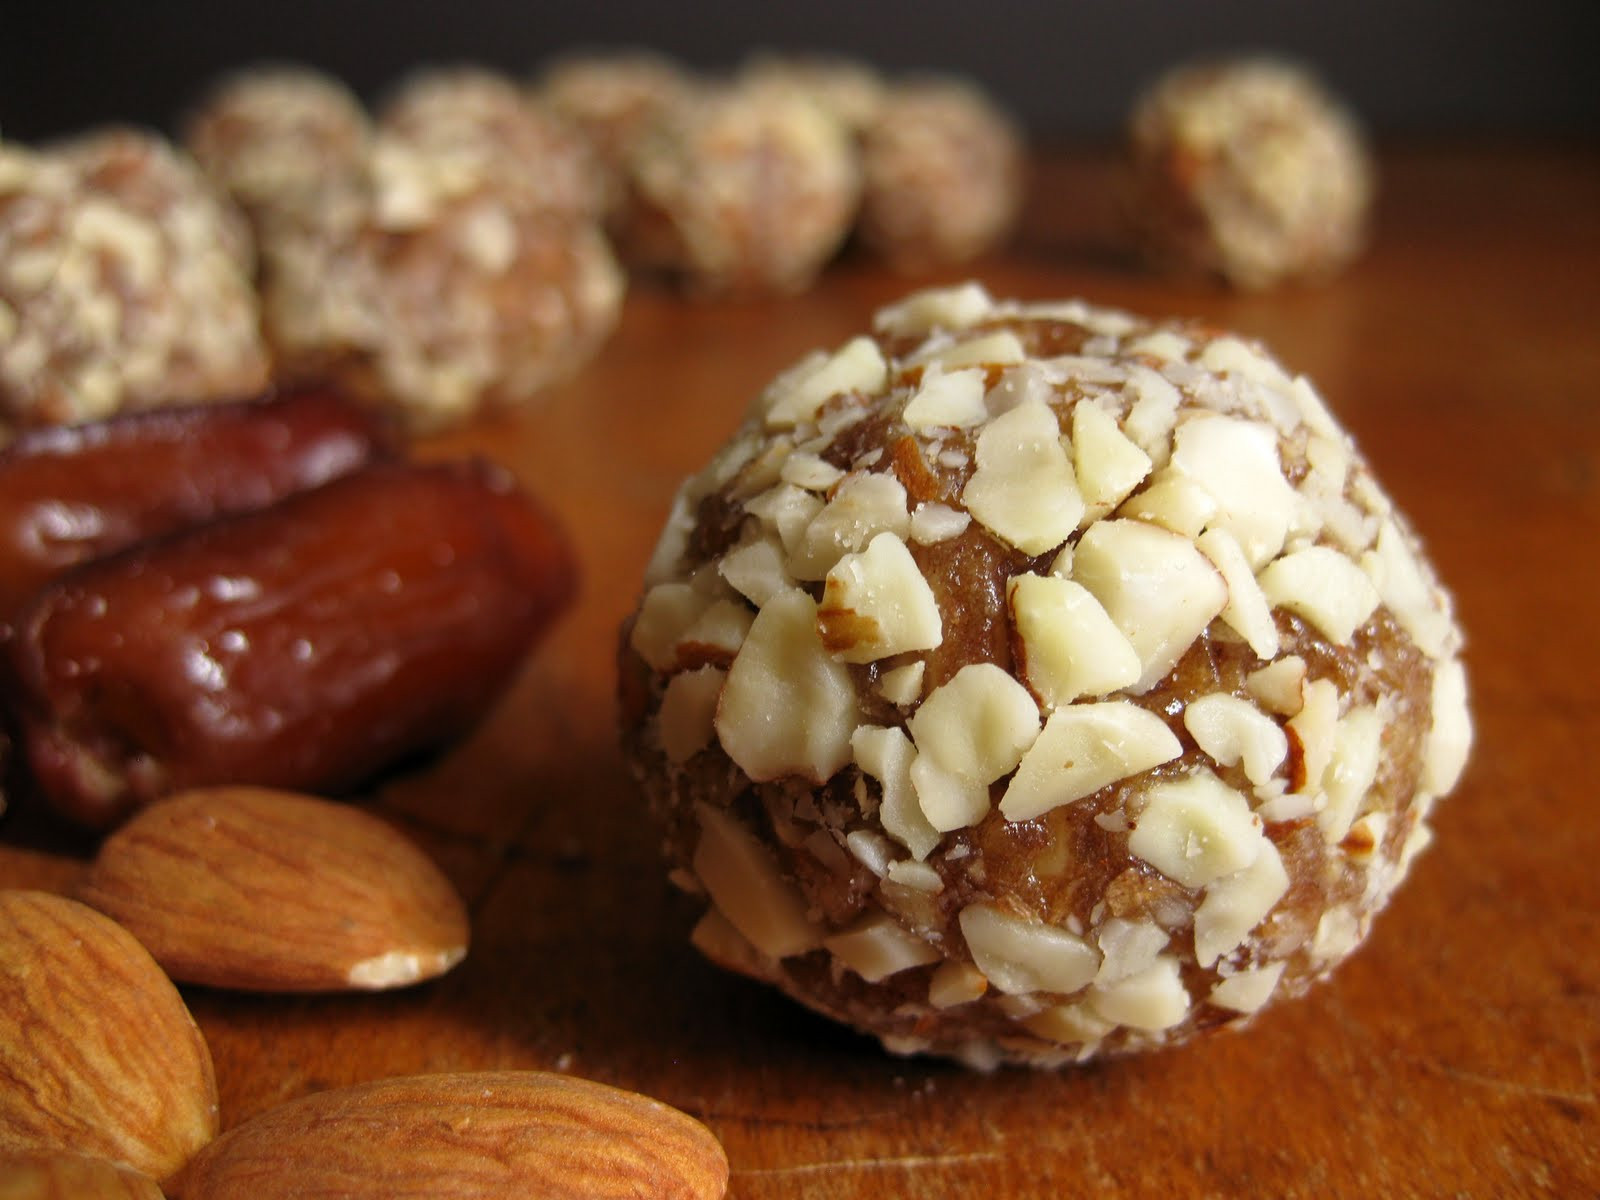 Healthy Date Dessert Recipes 20 Of the Best Ideas for Easy Recipe for Healthy Almond & Date Treats Paleo